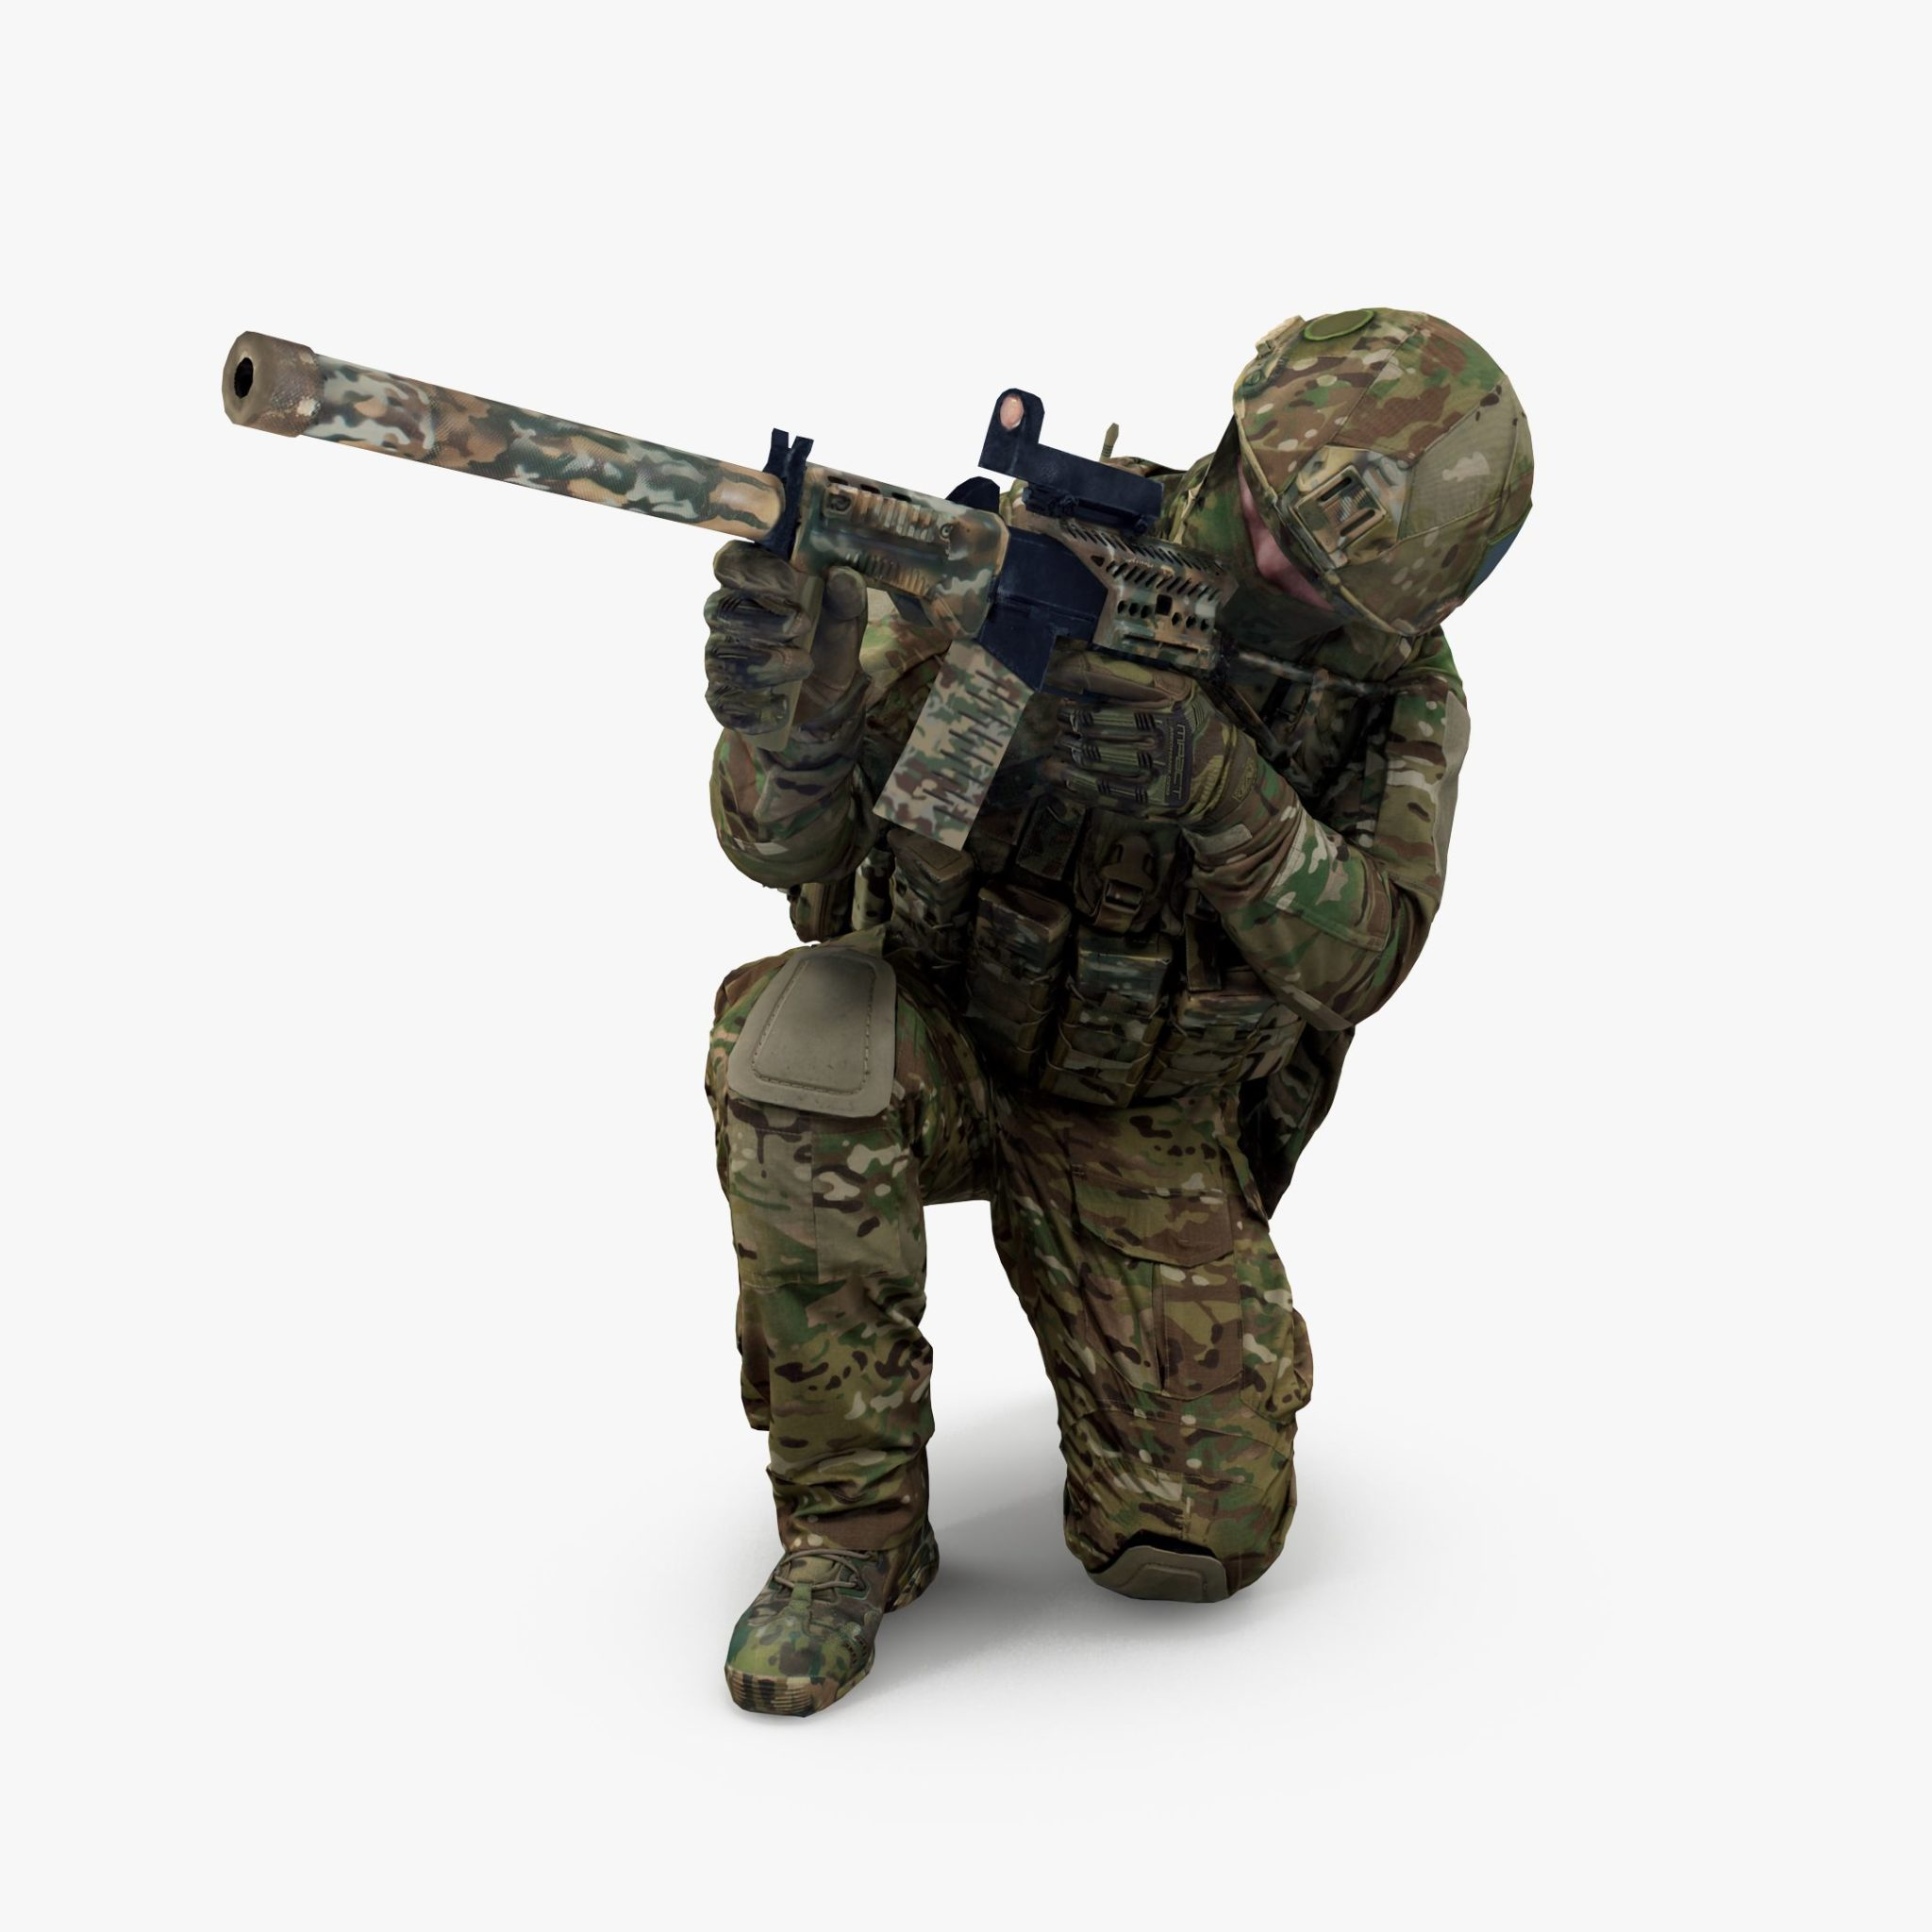 Soldier Squatting 3D Model | 3DTree Scanning Studio